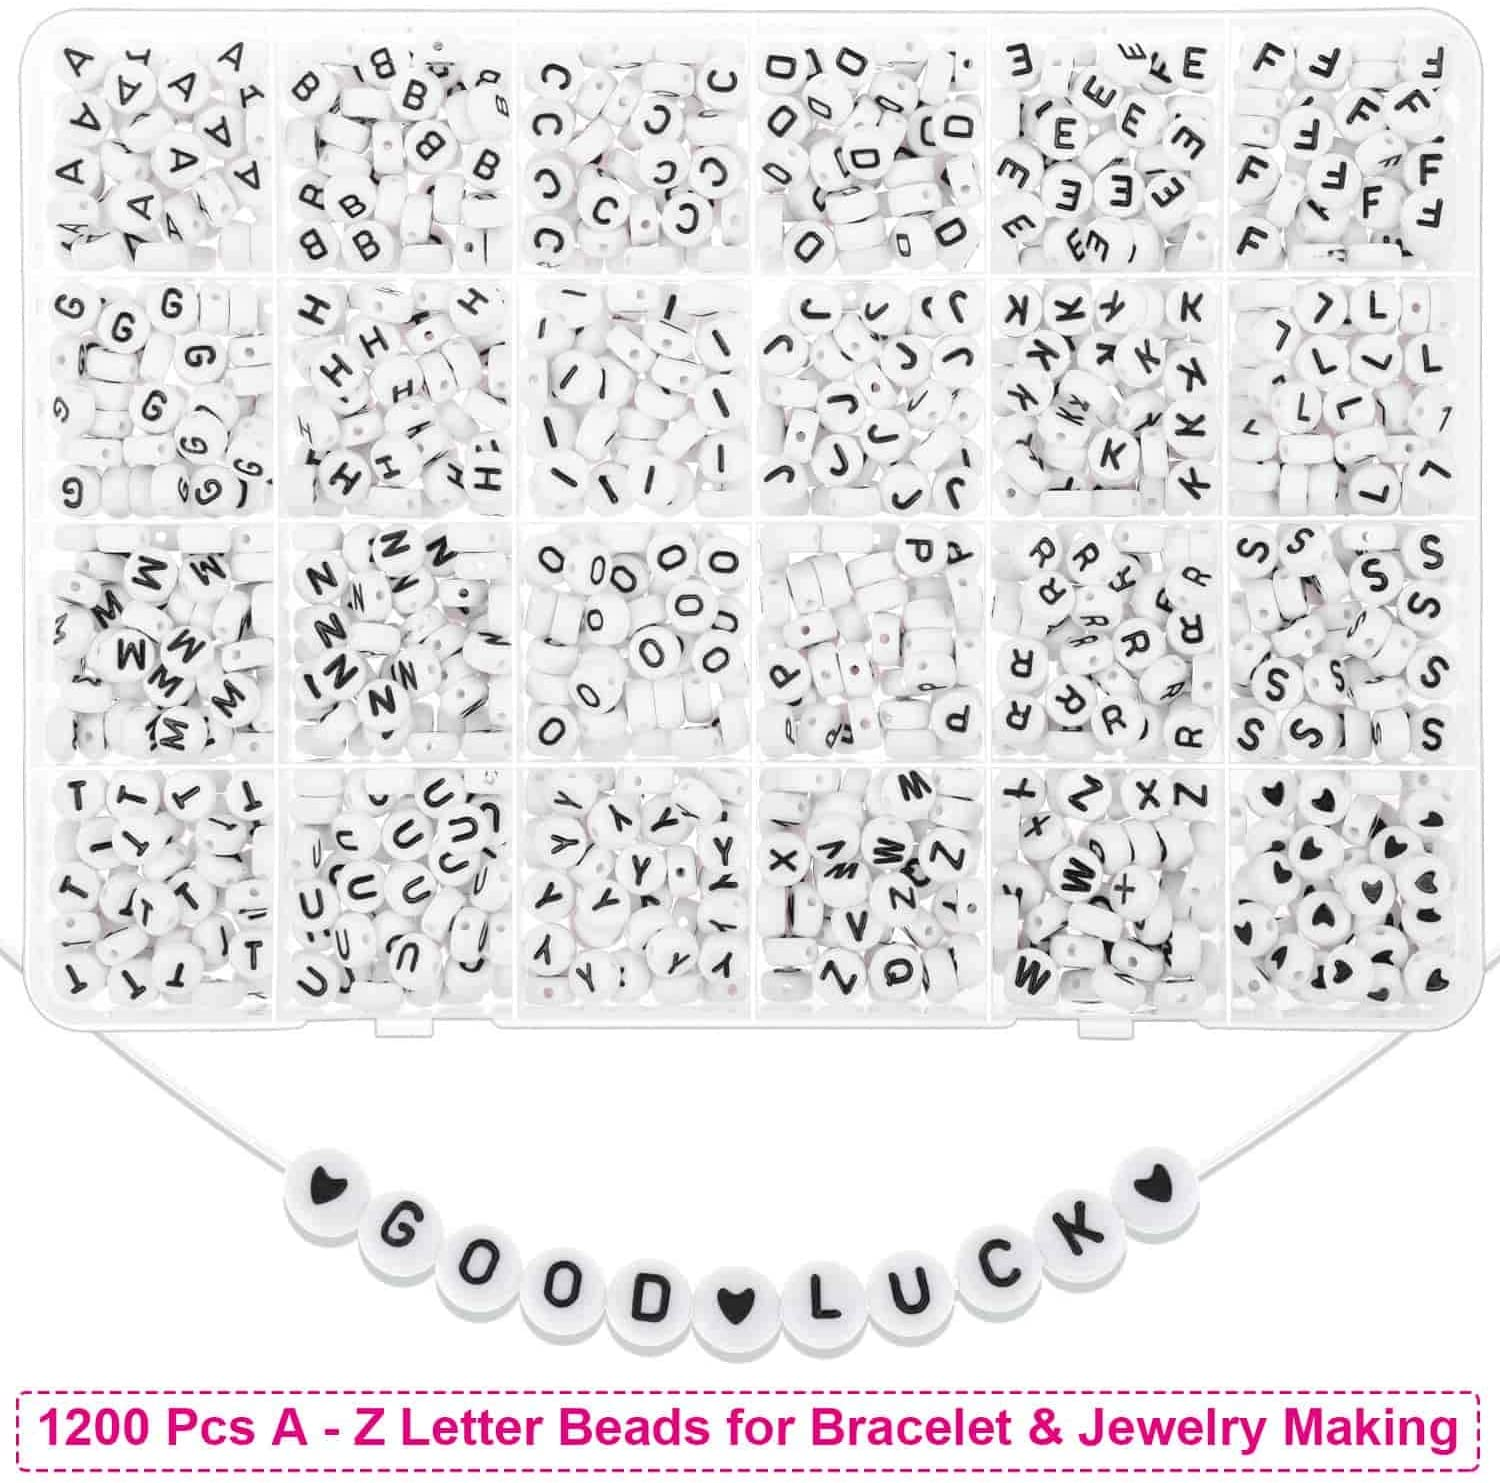 Beads for Bracelets Cridoz 2800 Pcs 4mm Small Pony Beads with 1200 Pcs